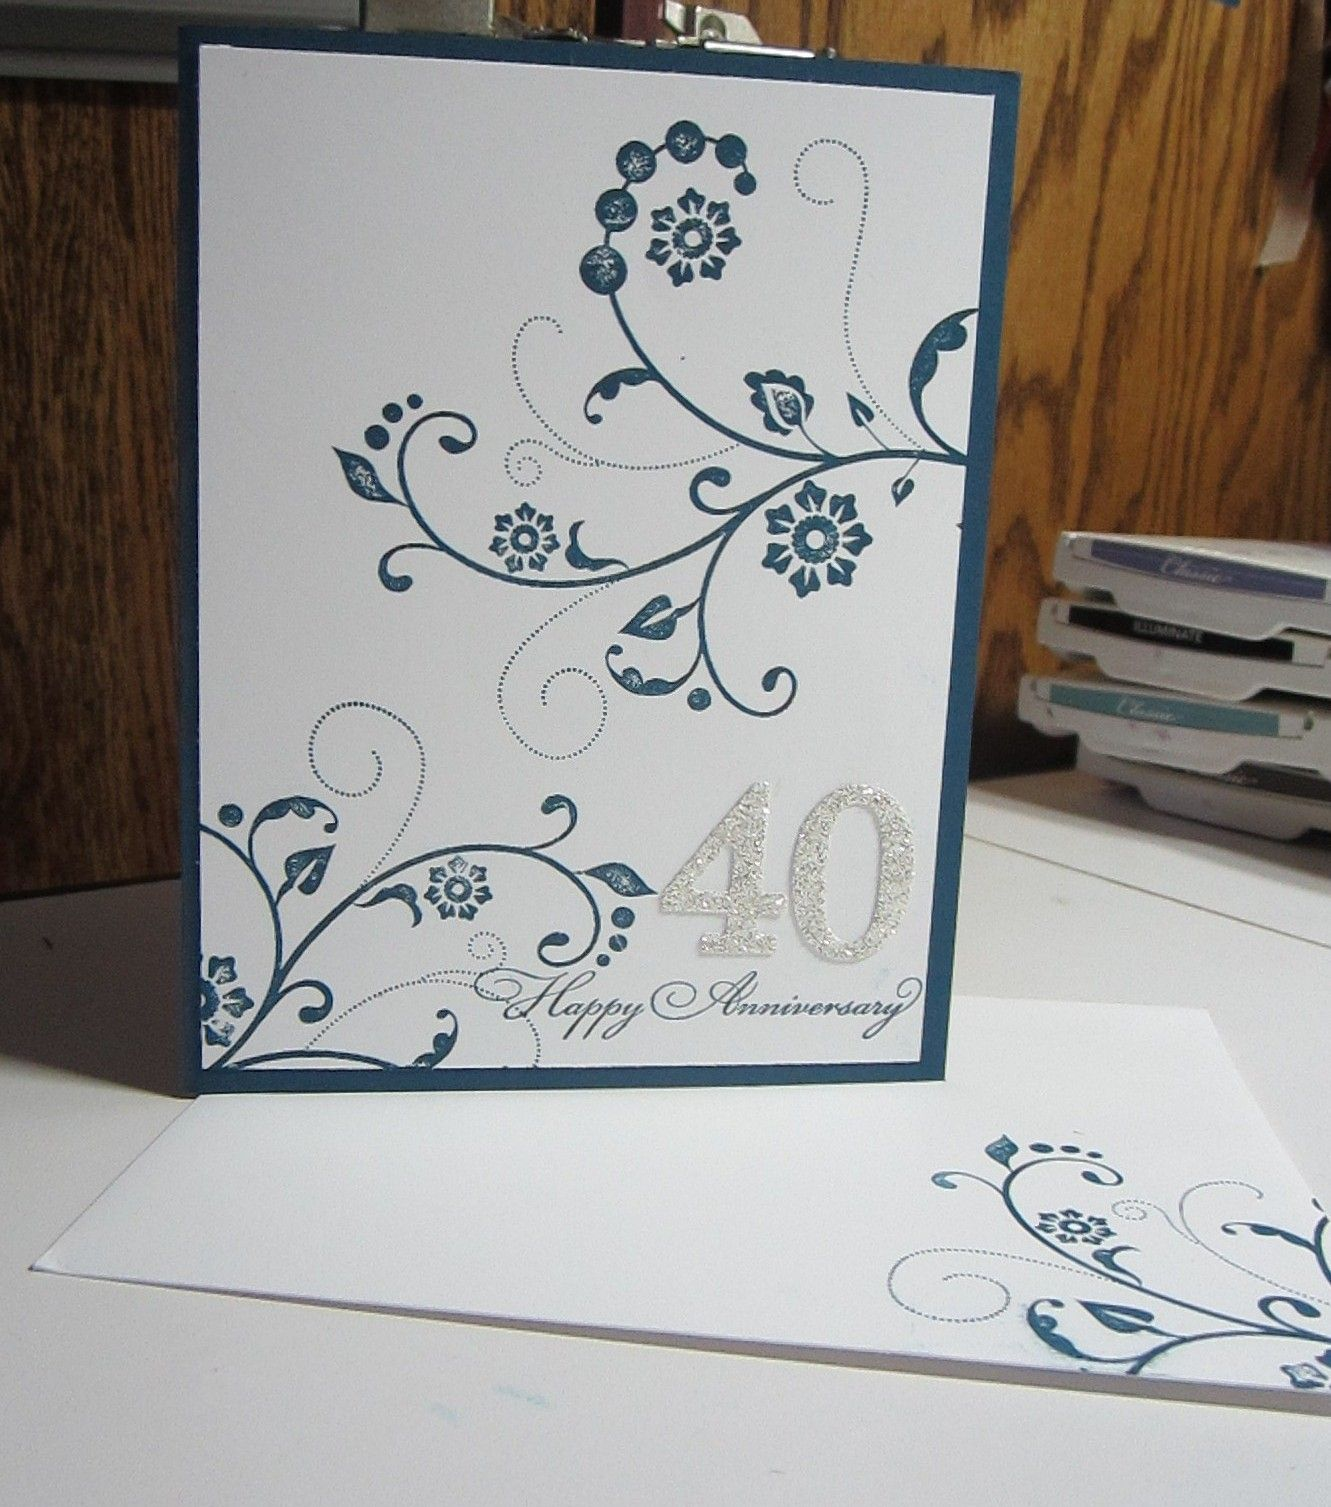 Happy 40th Anniversary With Images Anniversary Cards For